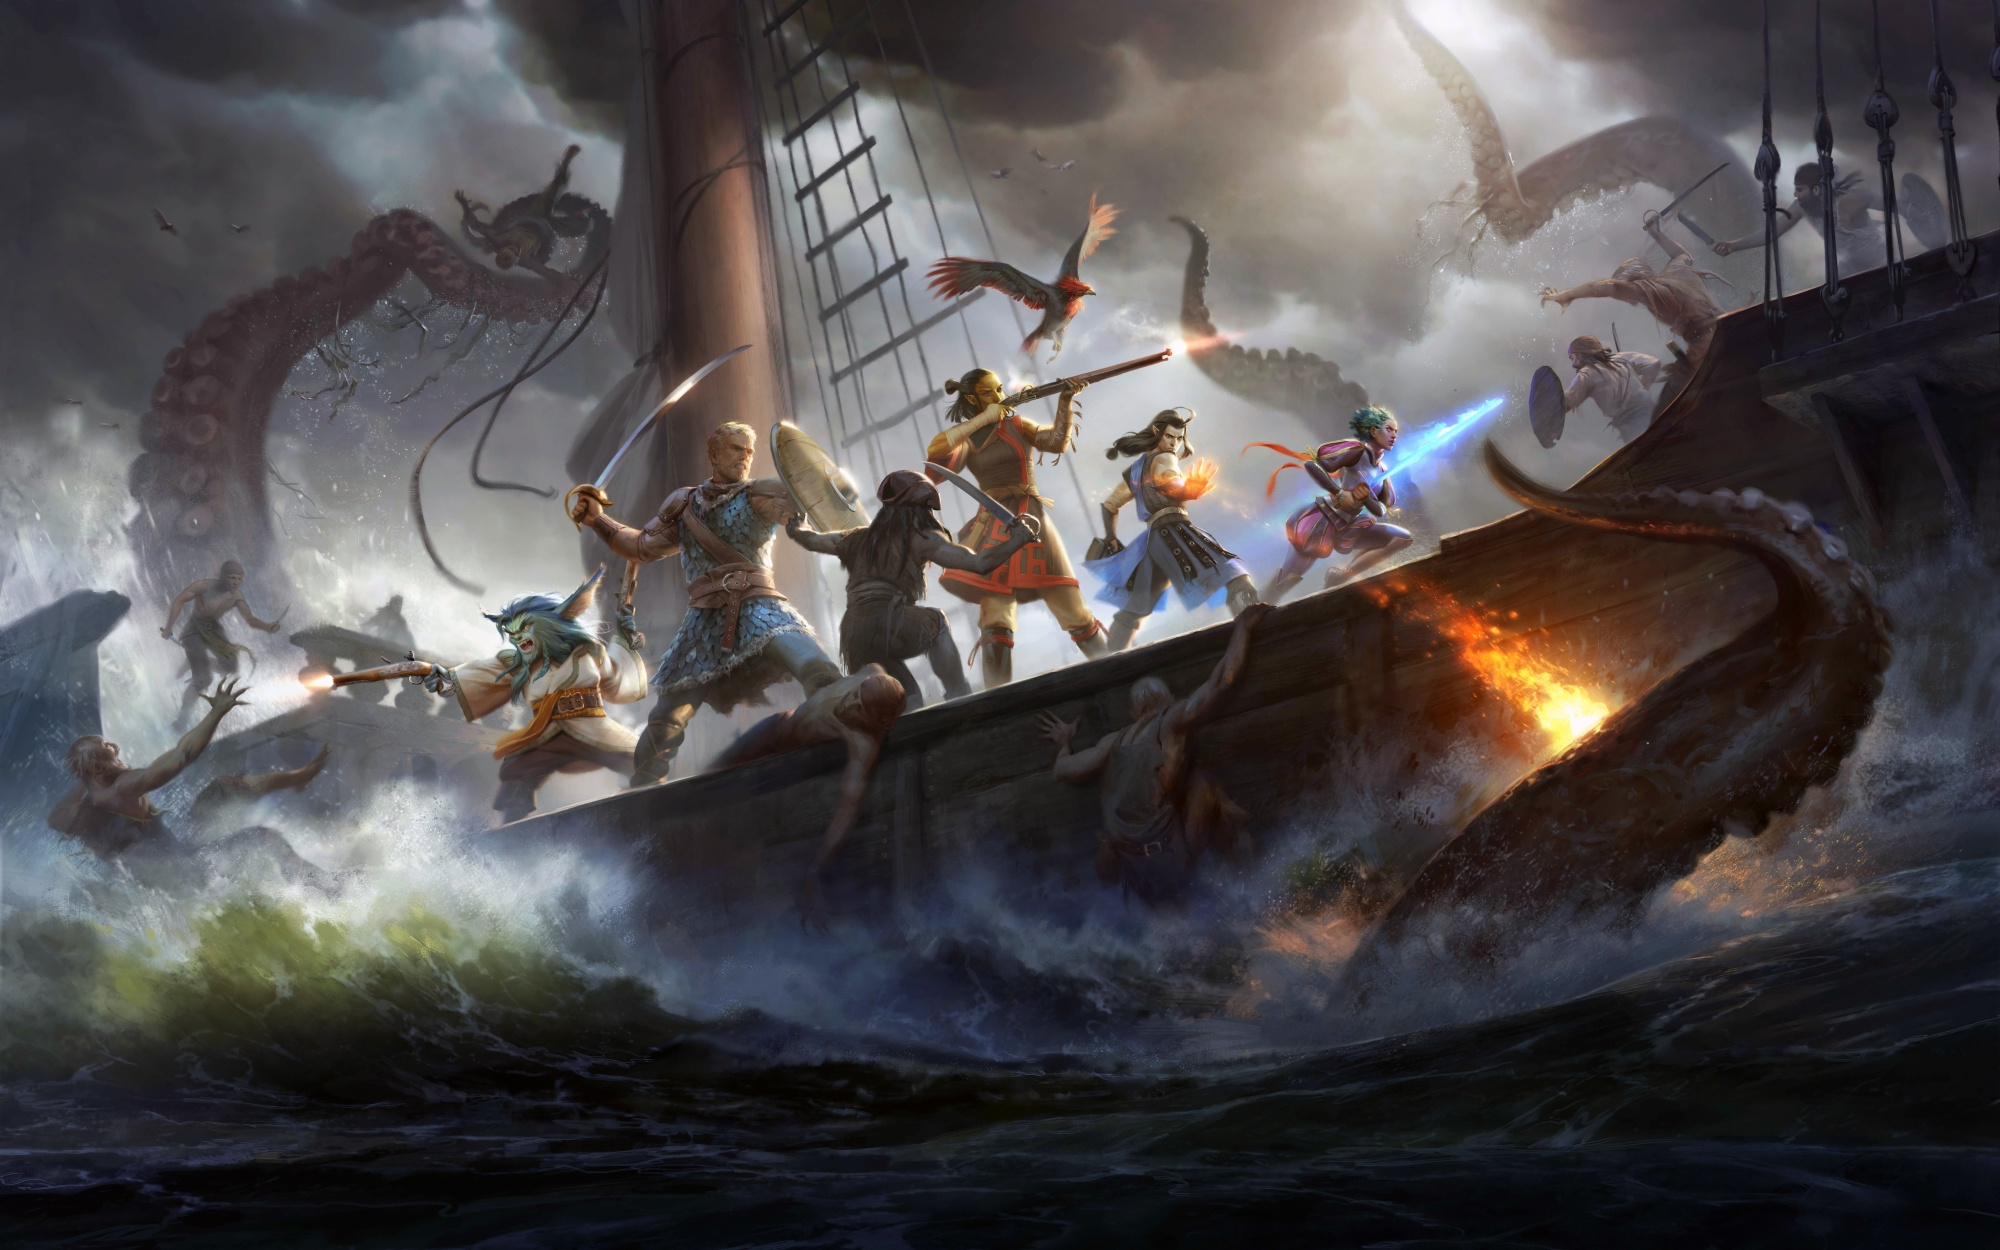 Pillars Of Eternity II: Deadfire review – role-playing on the high seas